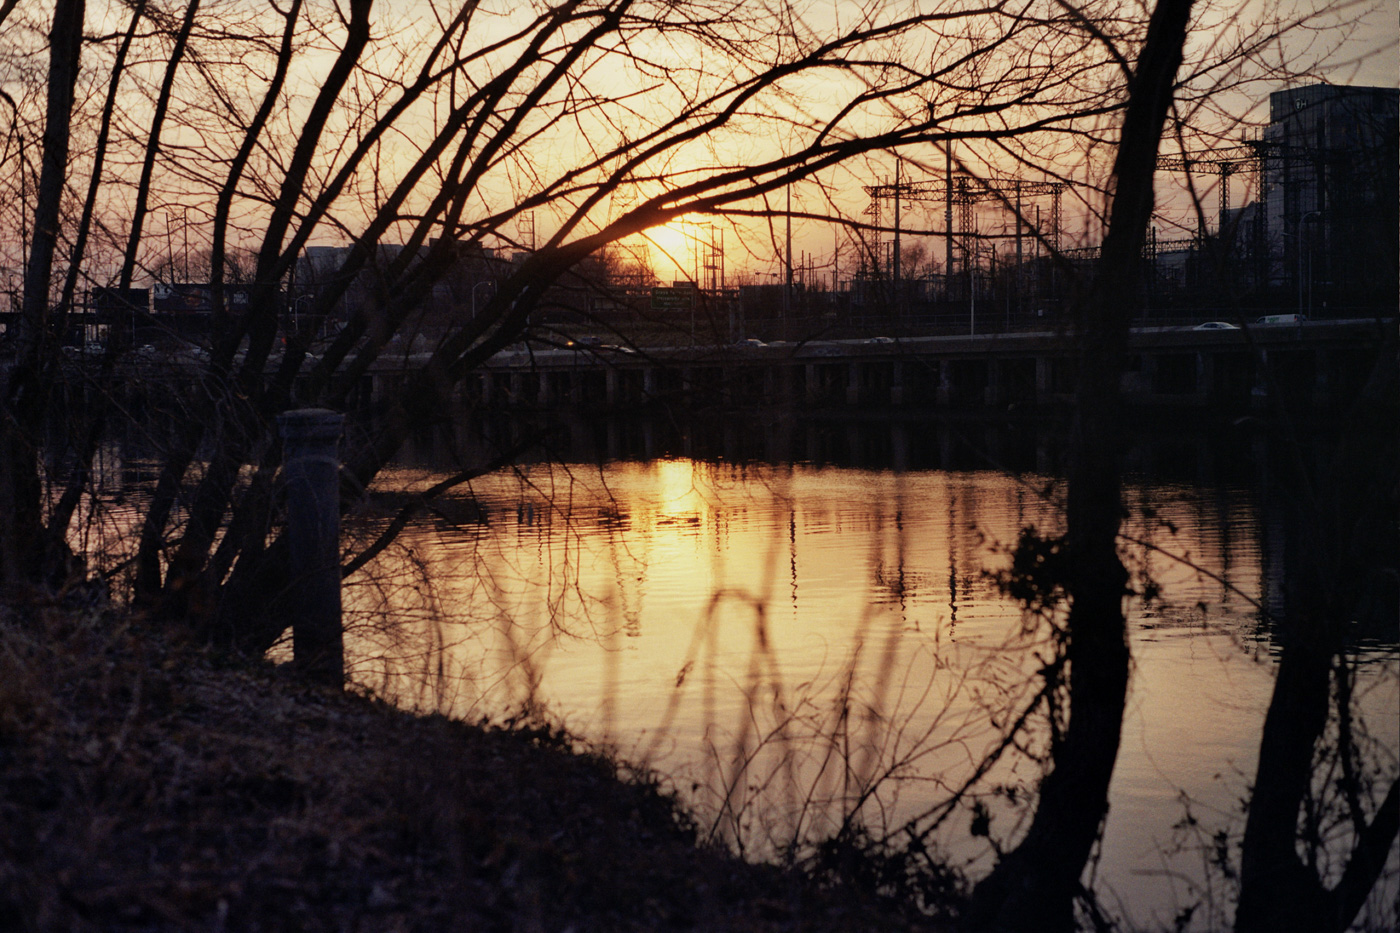 Sunset along the Schuylkill River